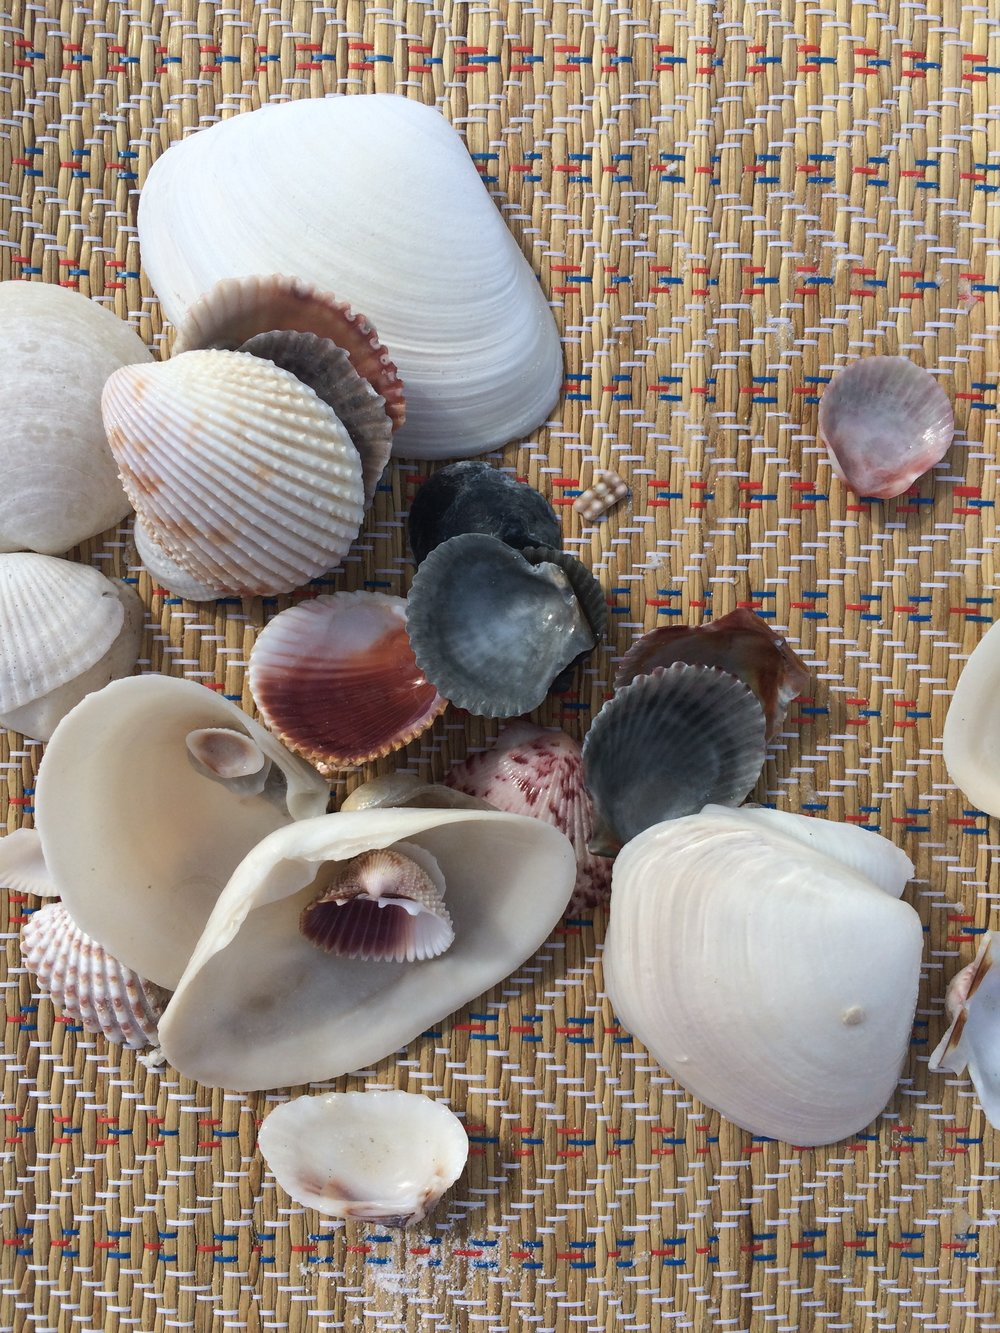 Beach finds from Marco Island, FL.